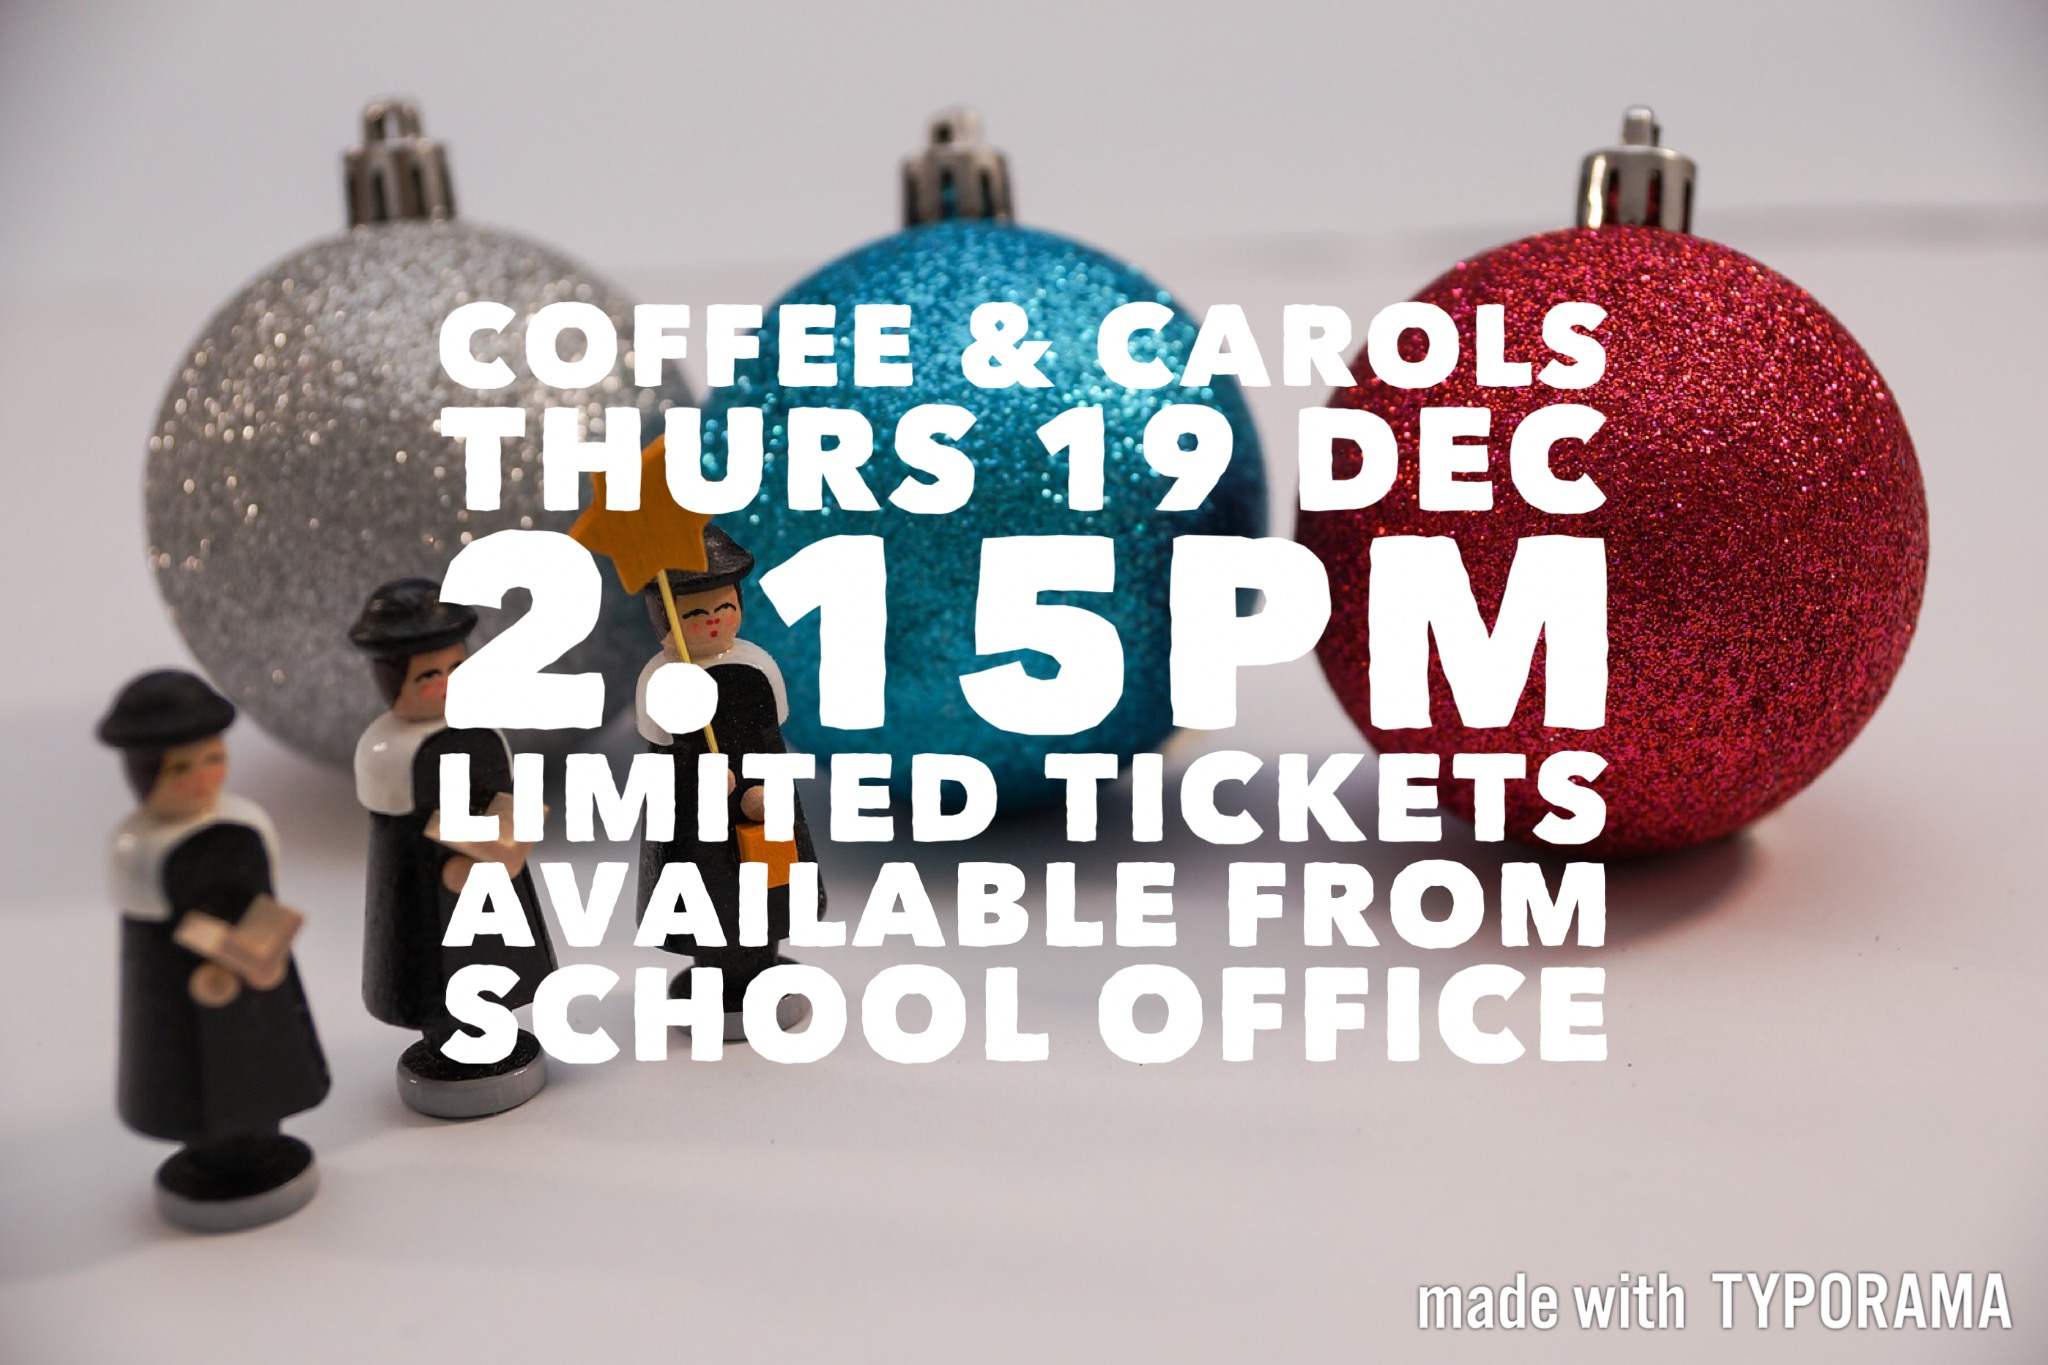 Coffee & Carols – Thurs 21 Dec 2.15pm